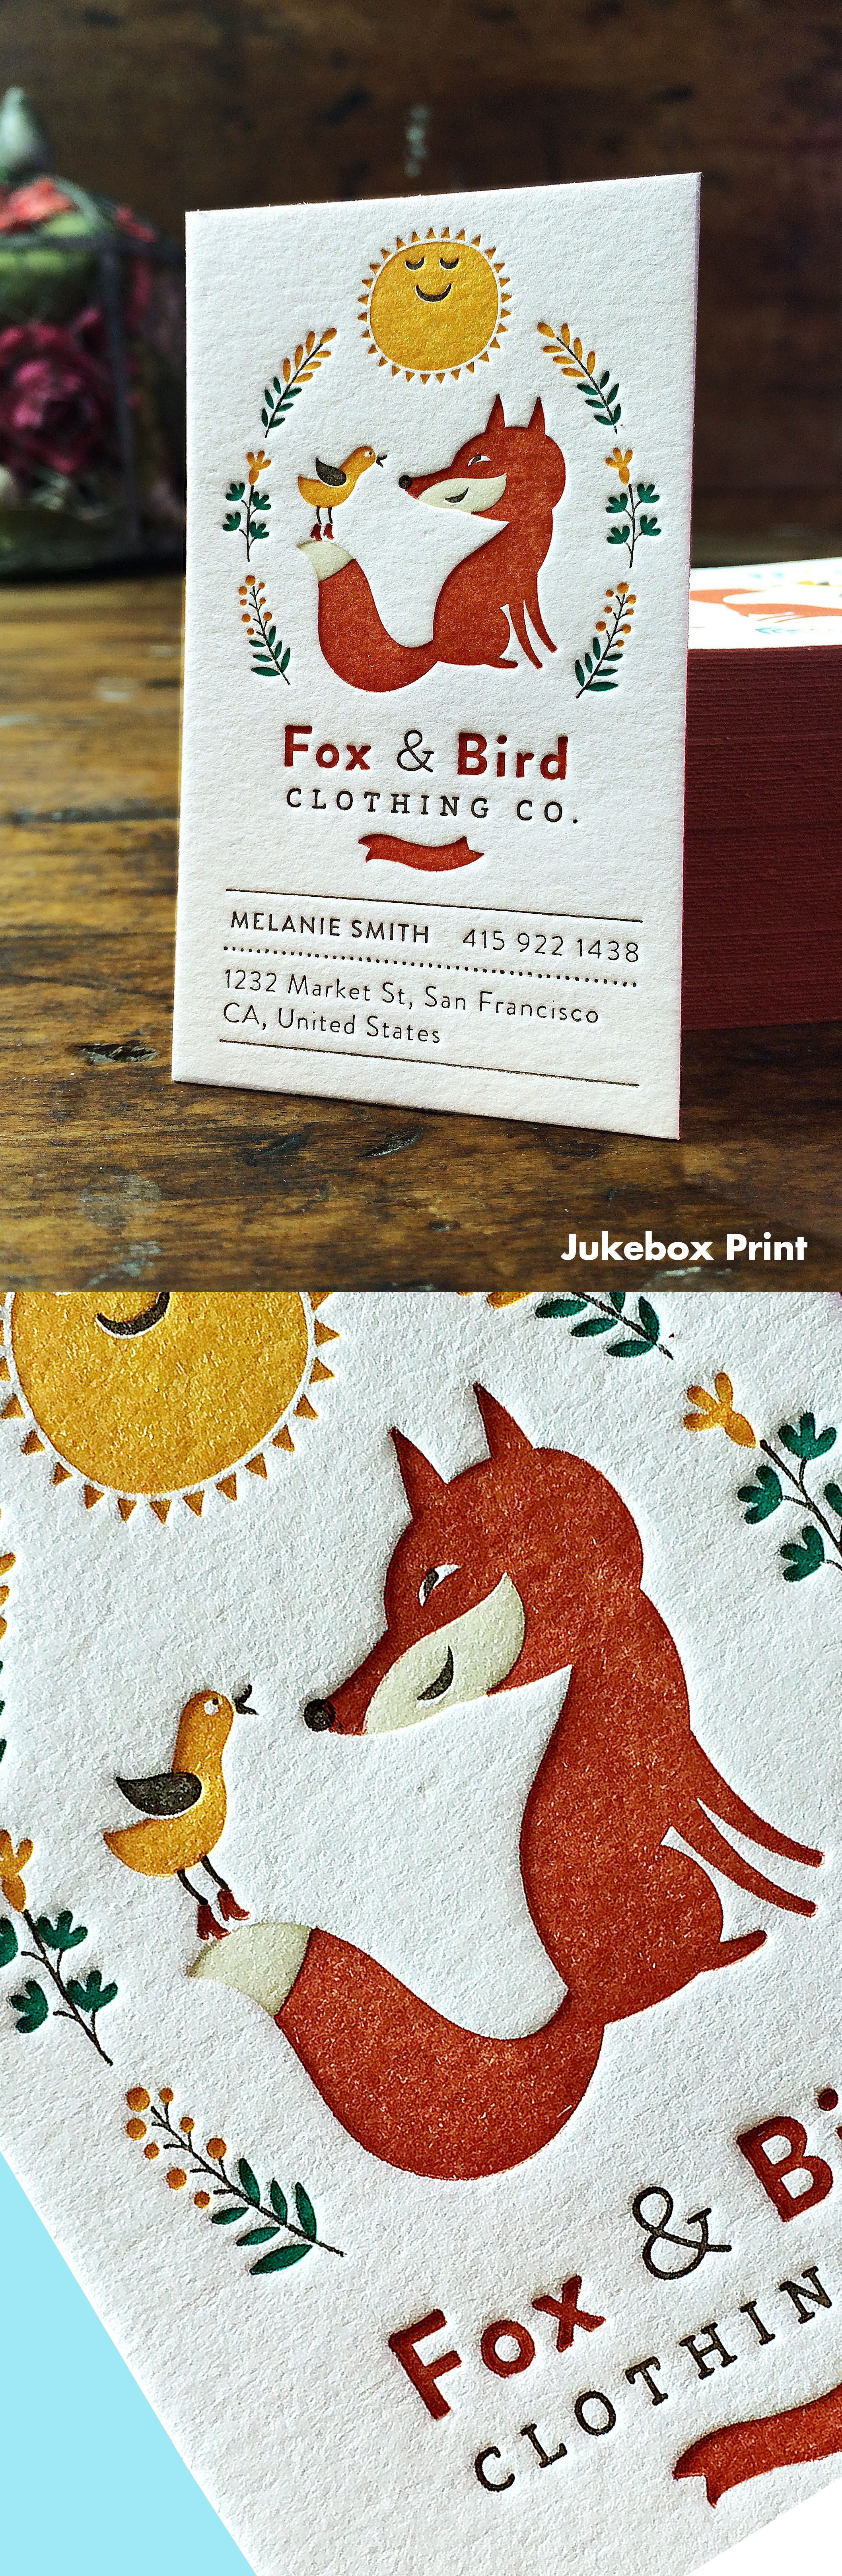 Cute Letterpress Business Cards produced on Cotton Paper. Printed by ...